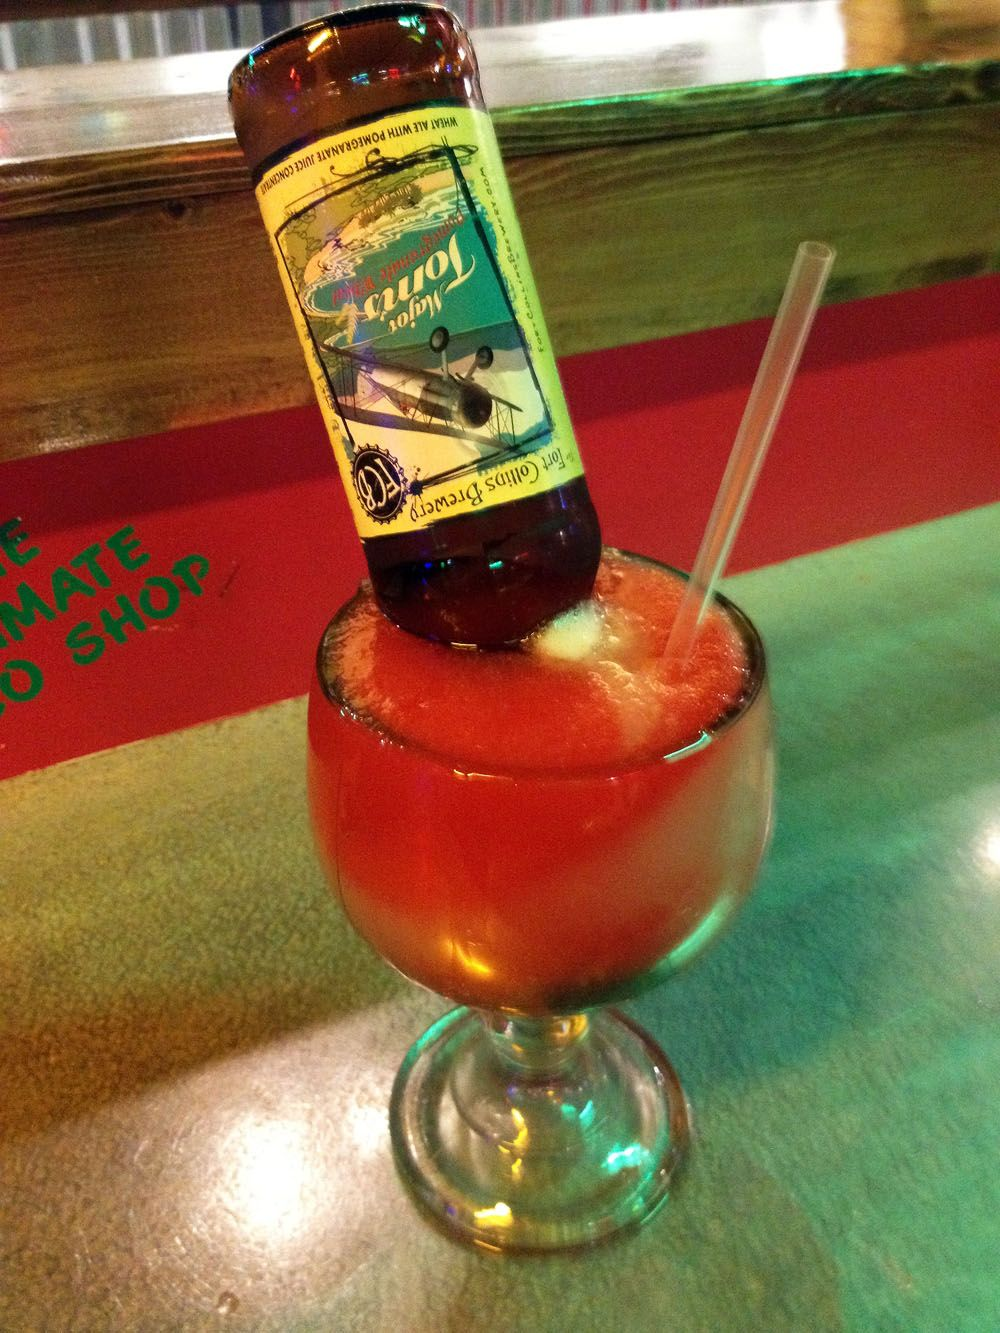 The Pomarita From Fuzzy S Taco Shop Really Is Delicious With A Fantastic Mix Of Sweet Margarita Mix And Malty Fr Wheat Beer Mexican Food Recipes Margarita Mix